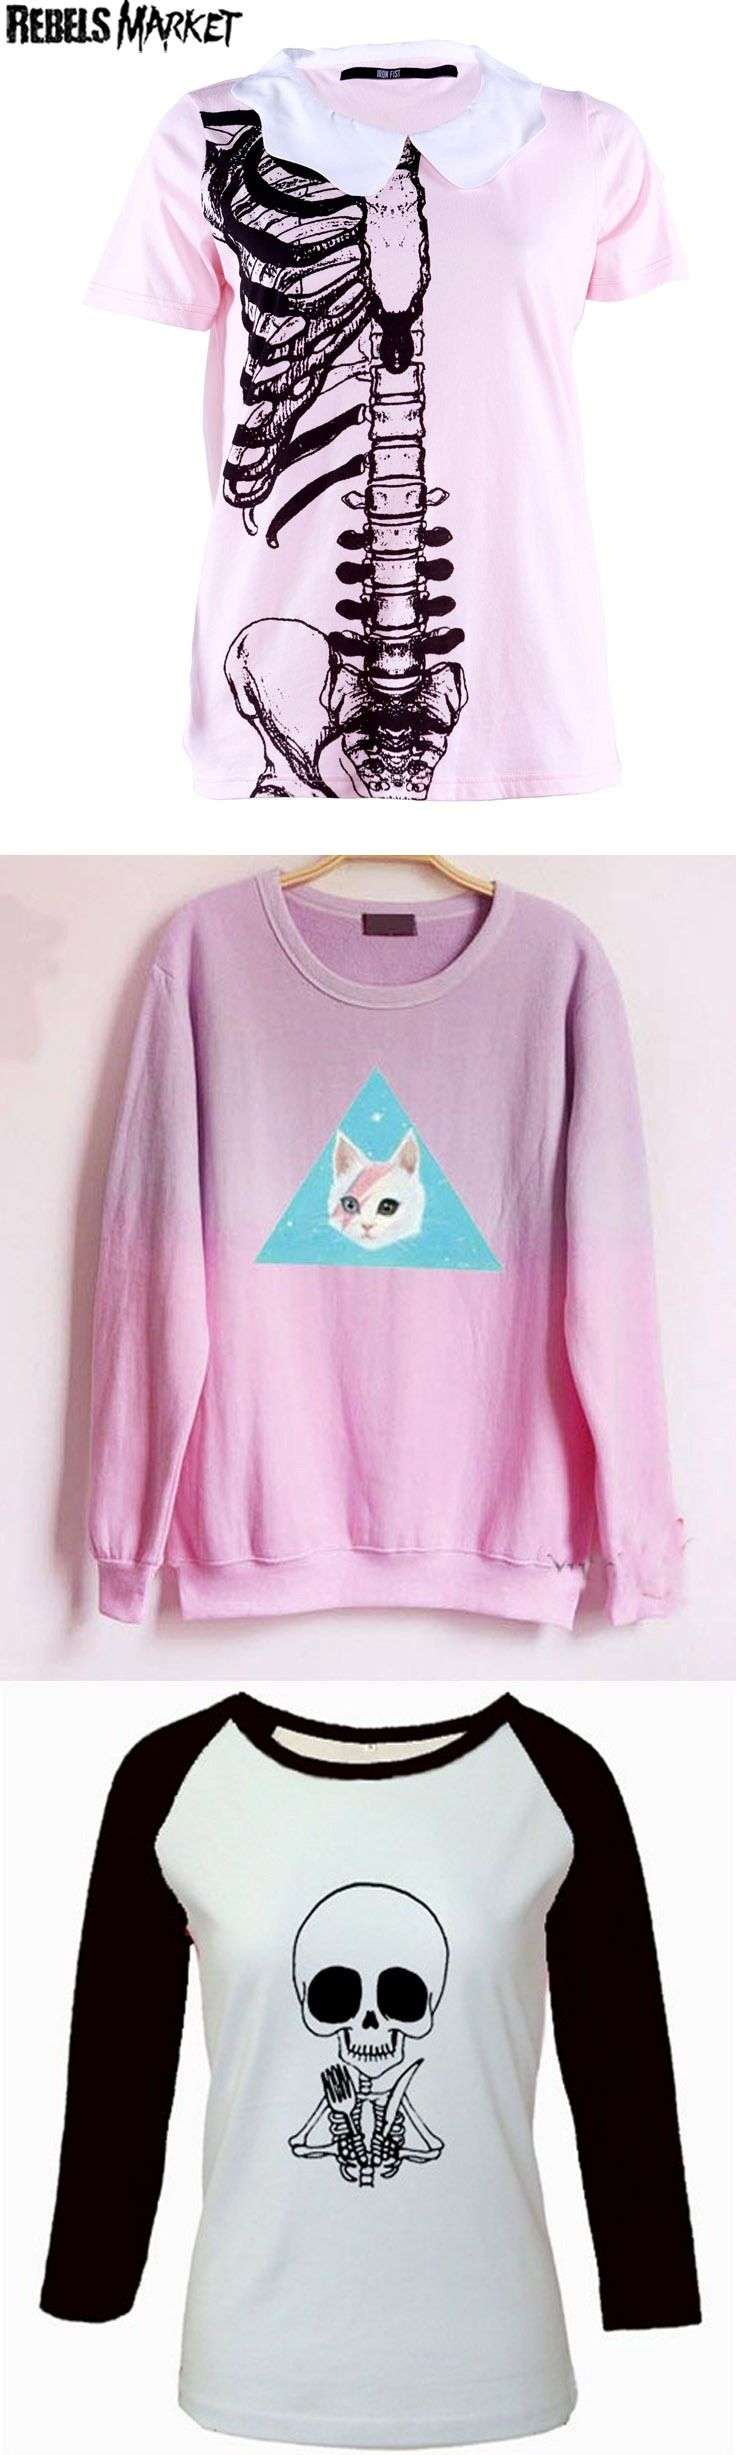 Shop grunge pastel goth tops at RebelsMarket.